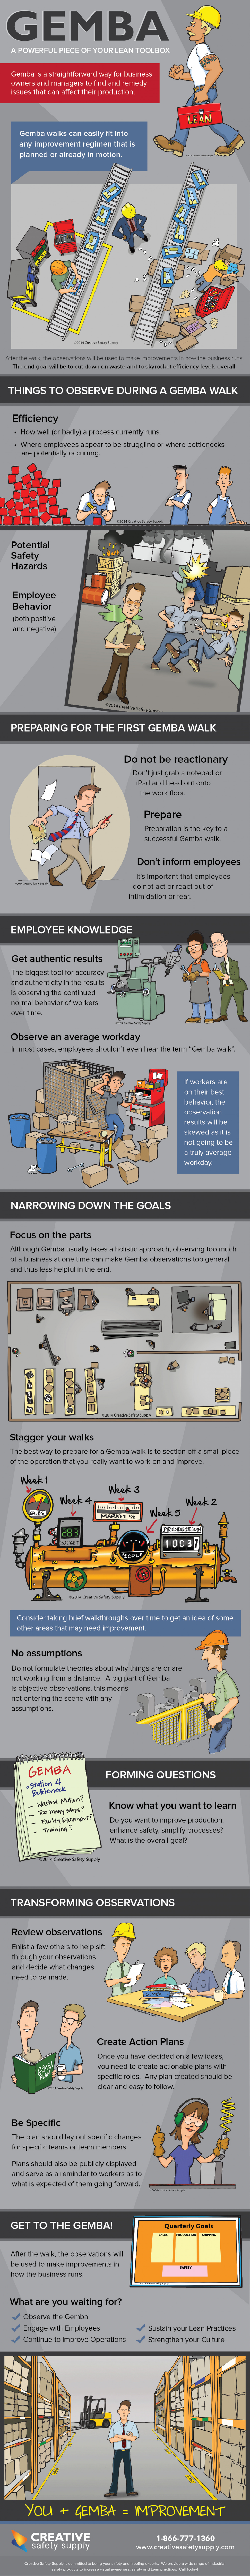 Gemba - A powerful piece of your lean toolbox Infographic